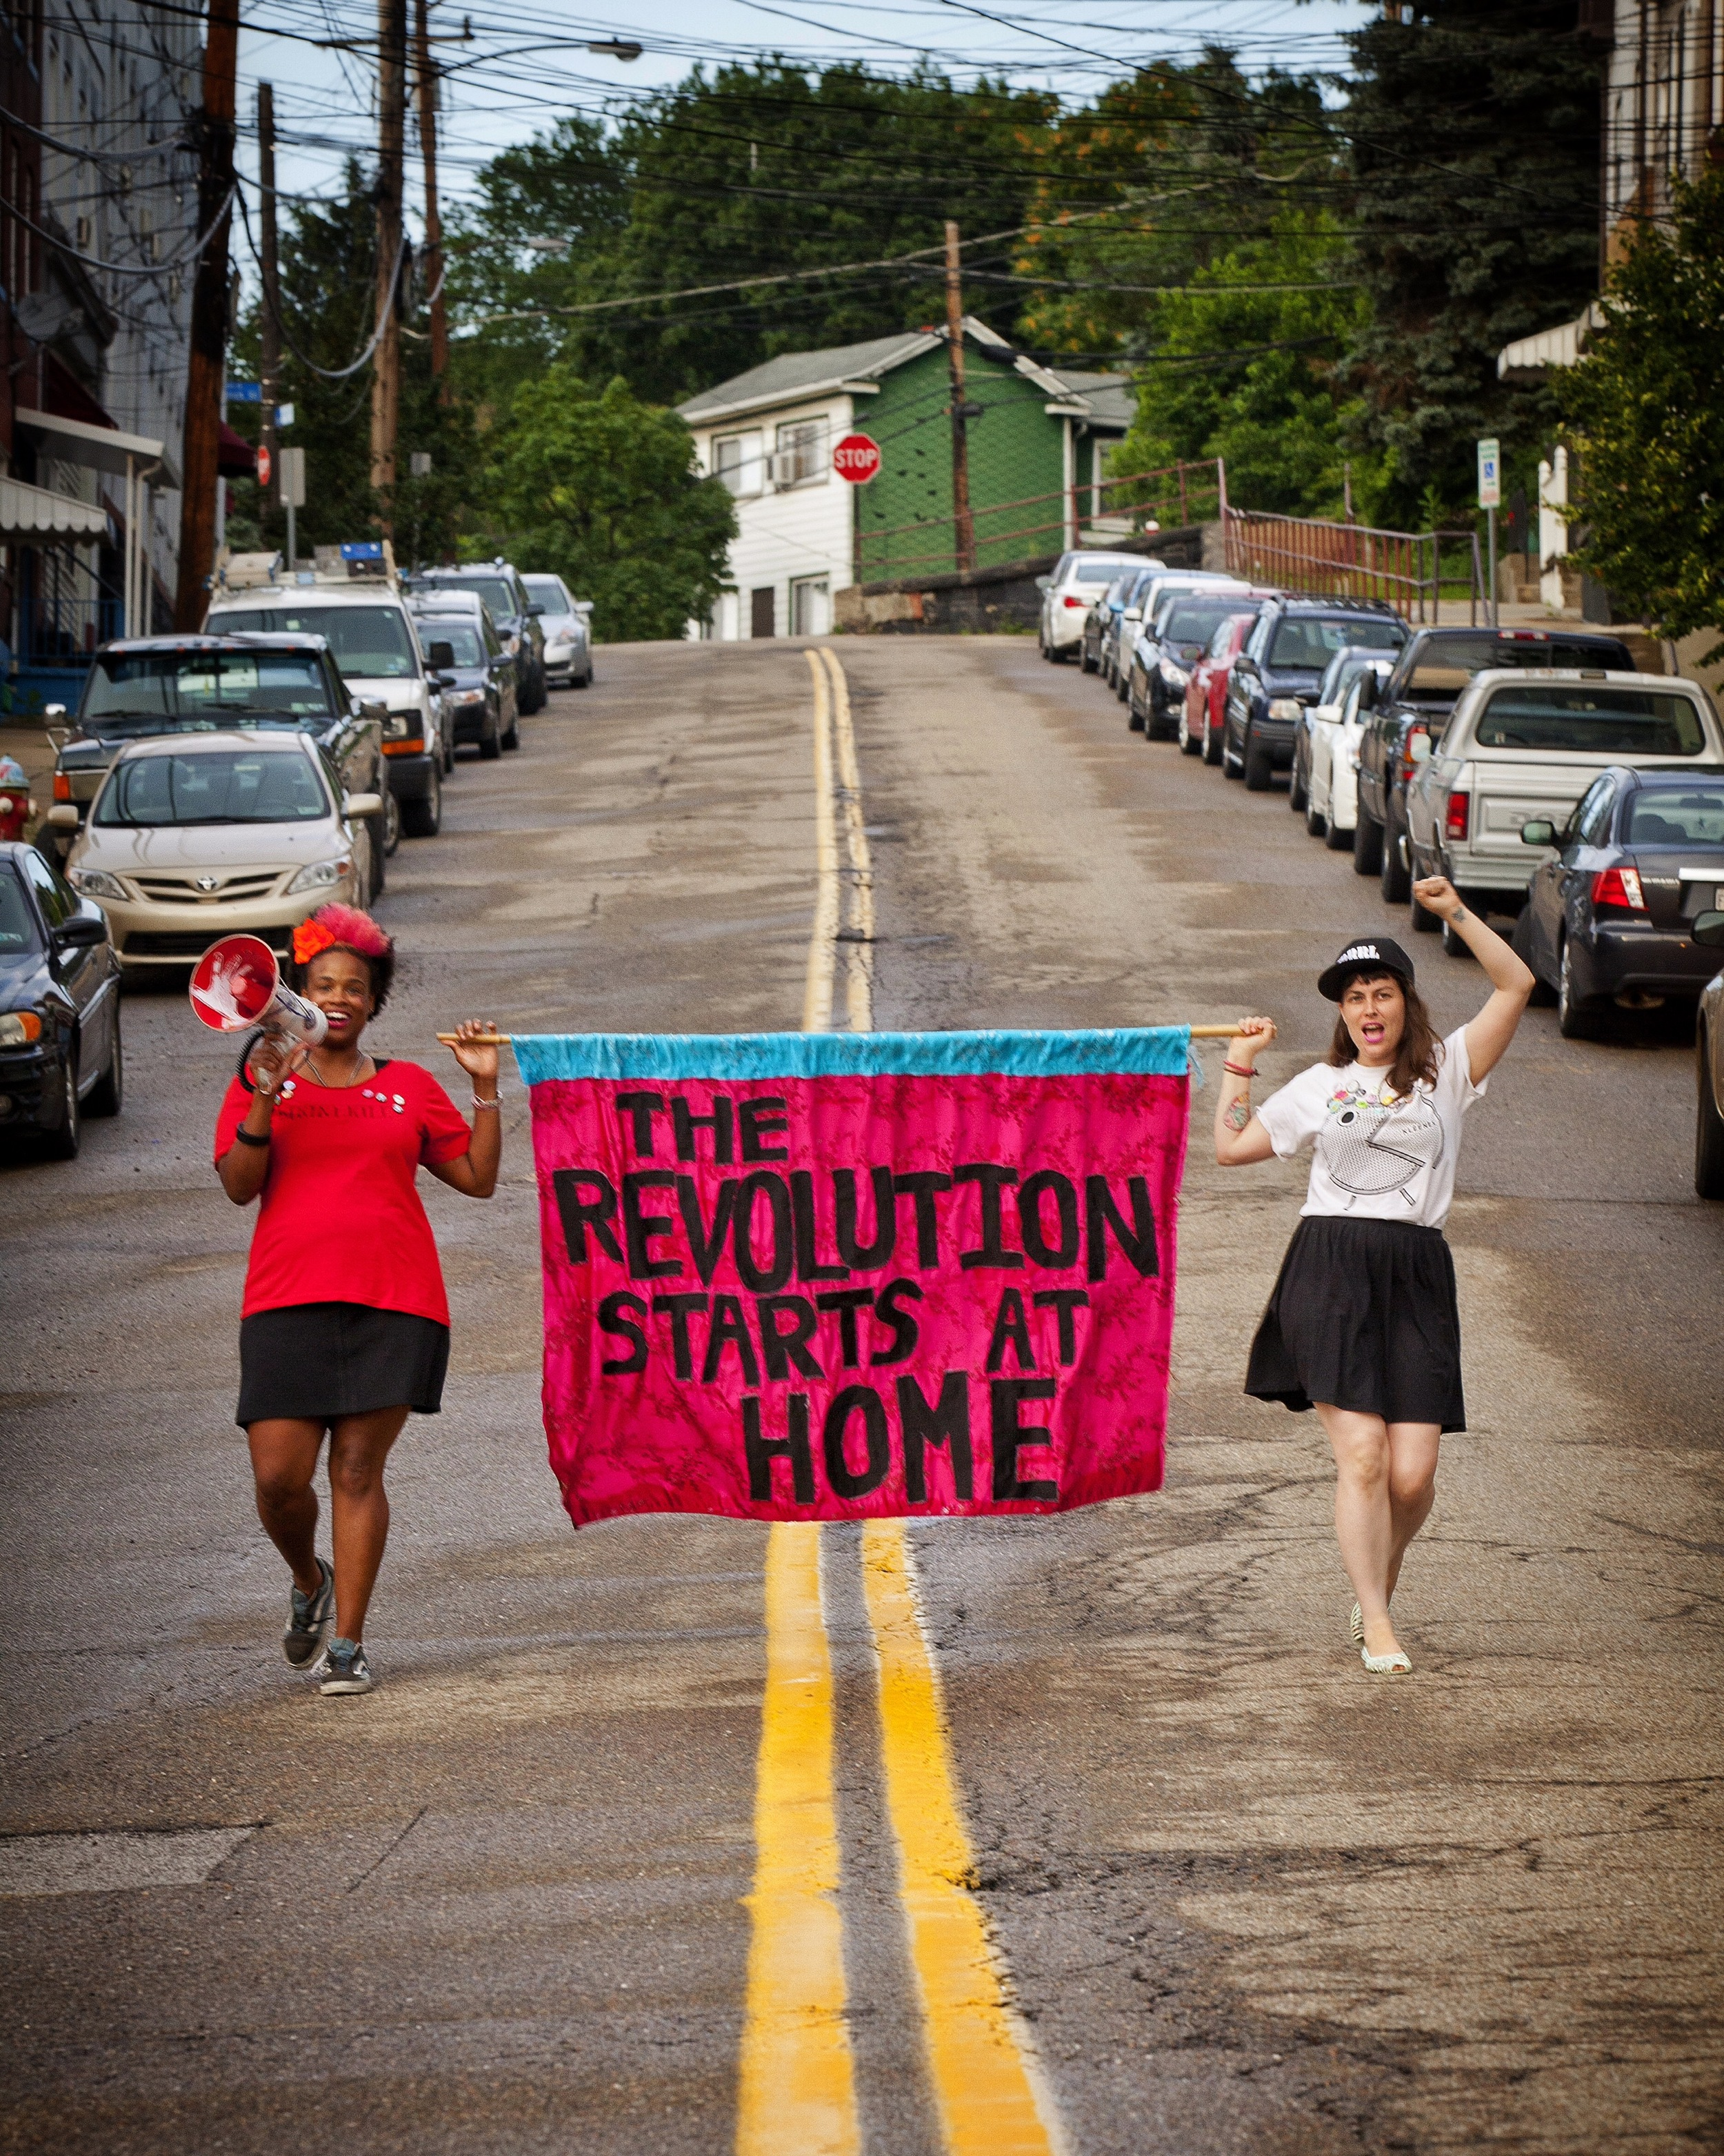 Activists Athena  Kazuhiro and Steph Flati, organizers of the Ladyfest 2015 Pittsburgh music festival, take it to the streets of Polish Hill in Pittsburgh for a portrait I made for the cover of Pittsburgh City Paper. To read the full archived story, go to:   http://www.pghcitypaper.com/pittsburgh/under-a-new-name-ladyfest-returns-with-a-lineup-of-female-dominated-bands/Content?oid=1840286